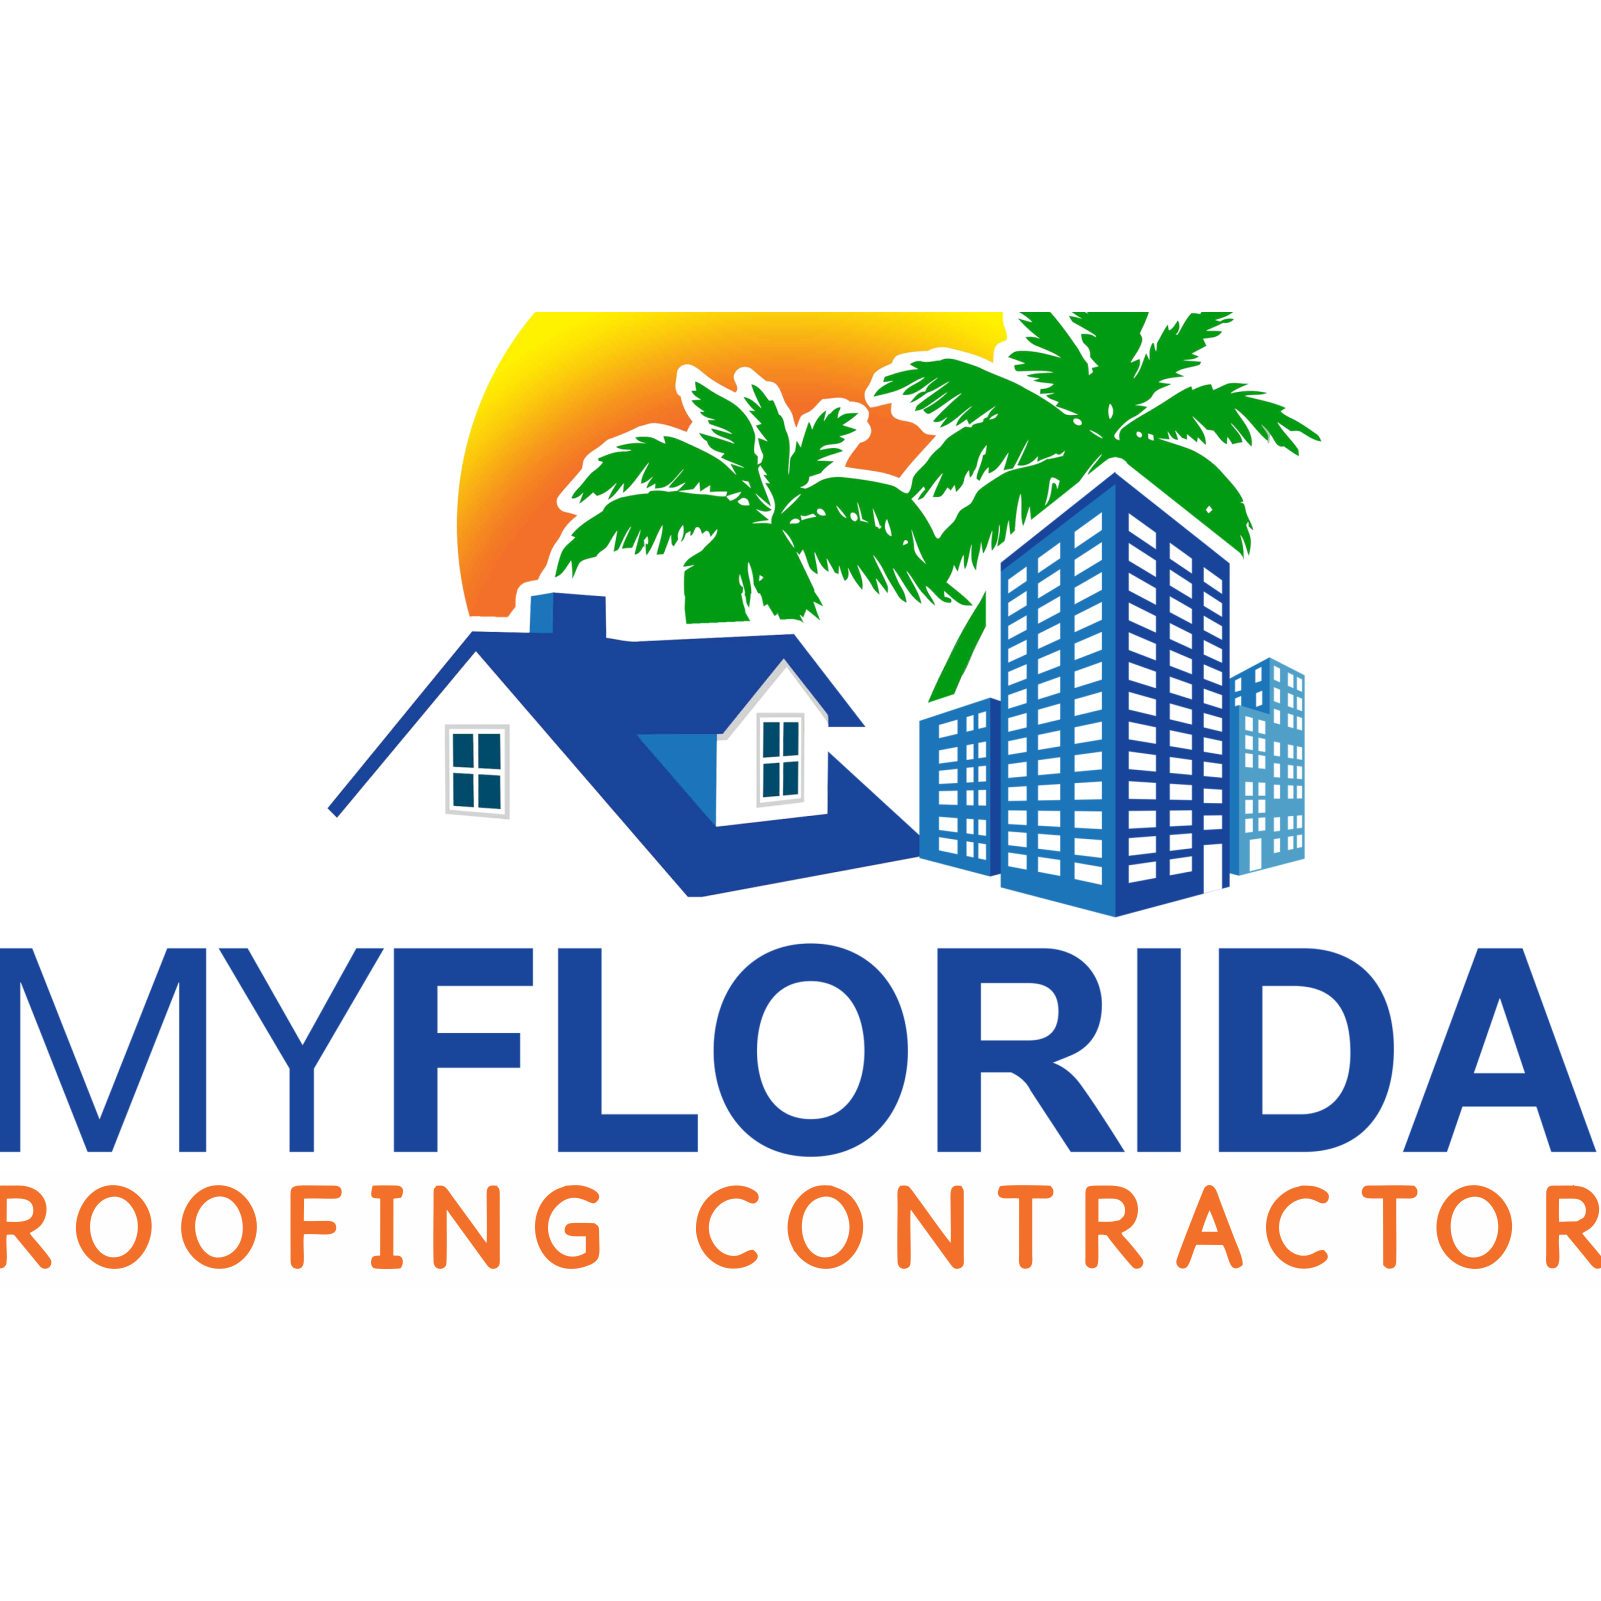 My Florida Roofing Contractor Vero Beach (772)453-7219